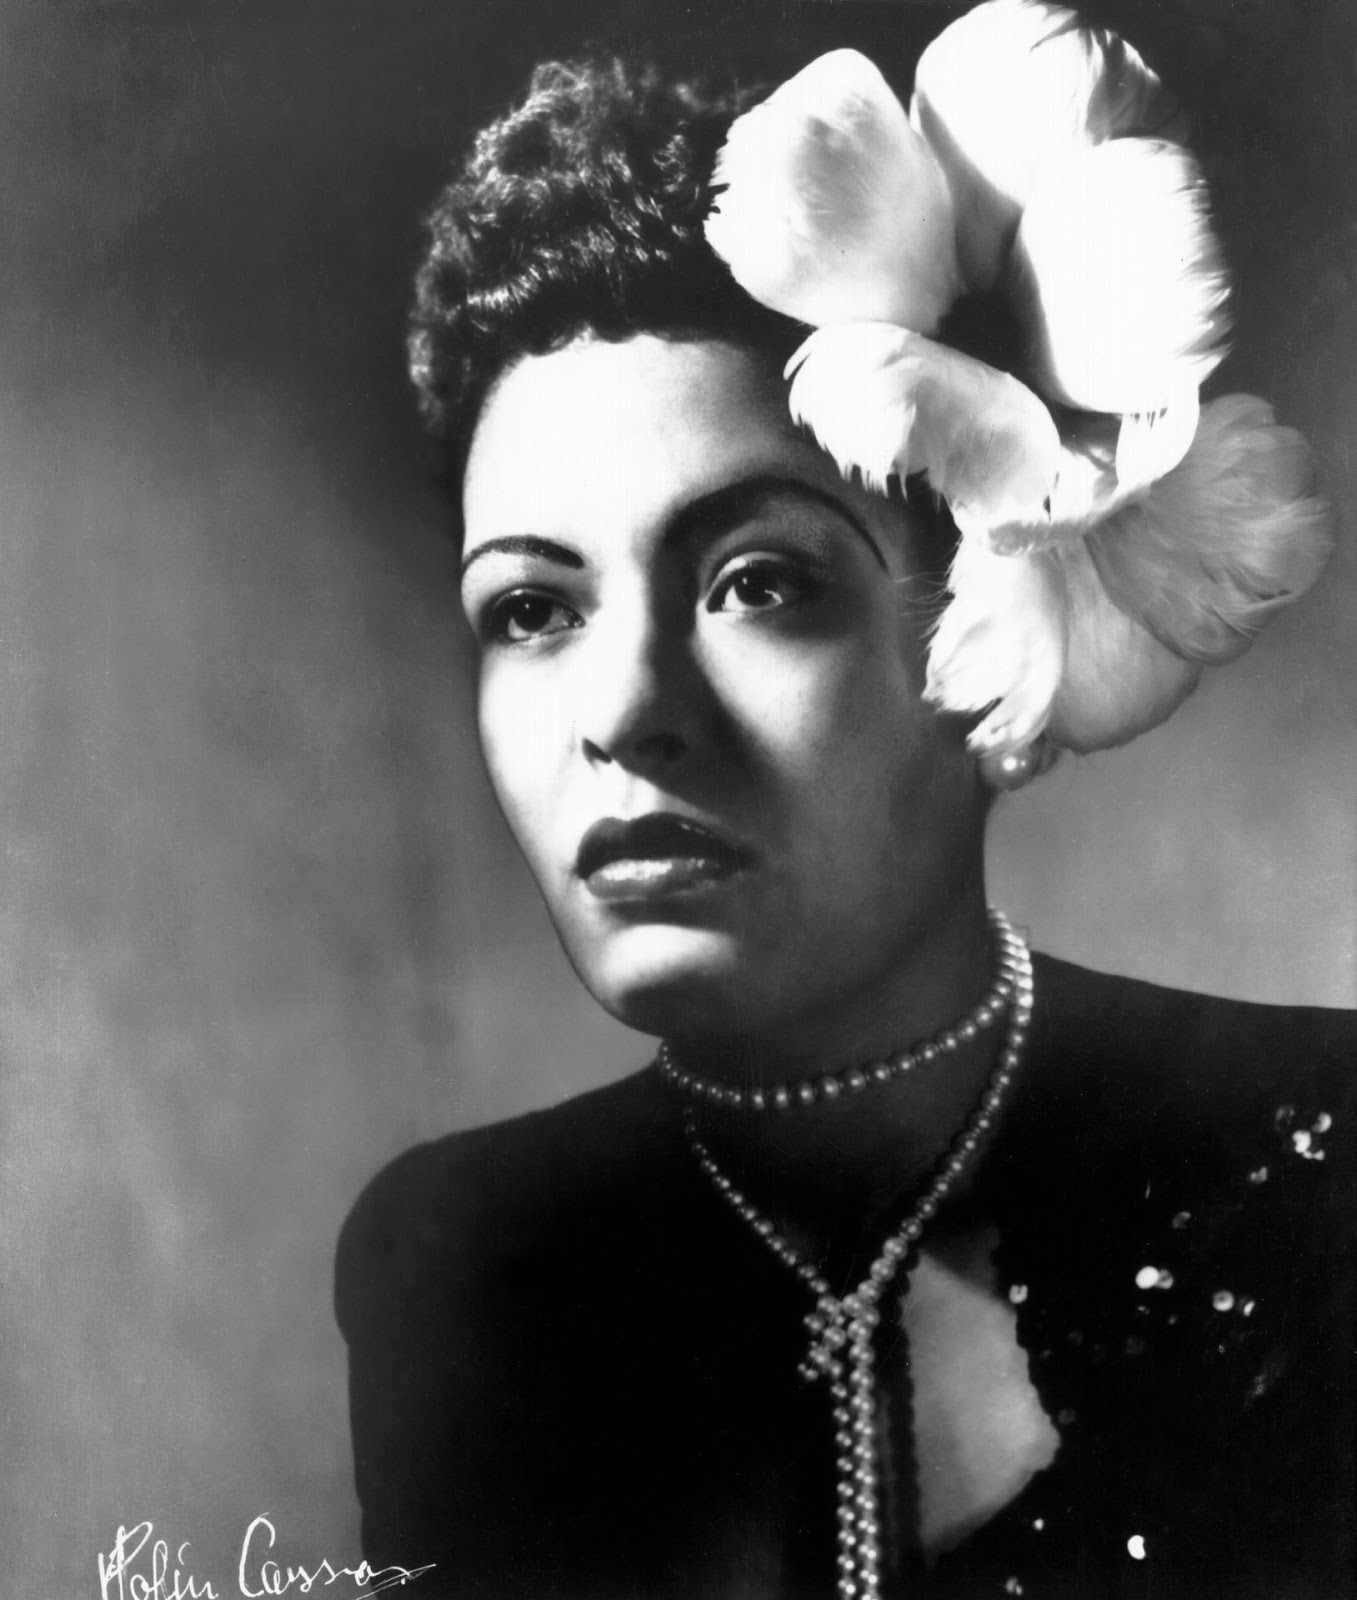 http://jazzdocu.blogspot.it/2015/01/billie-holiday-story.html